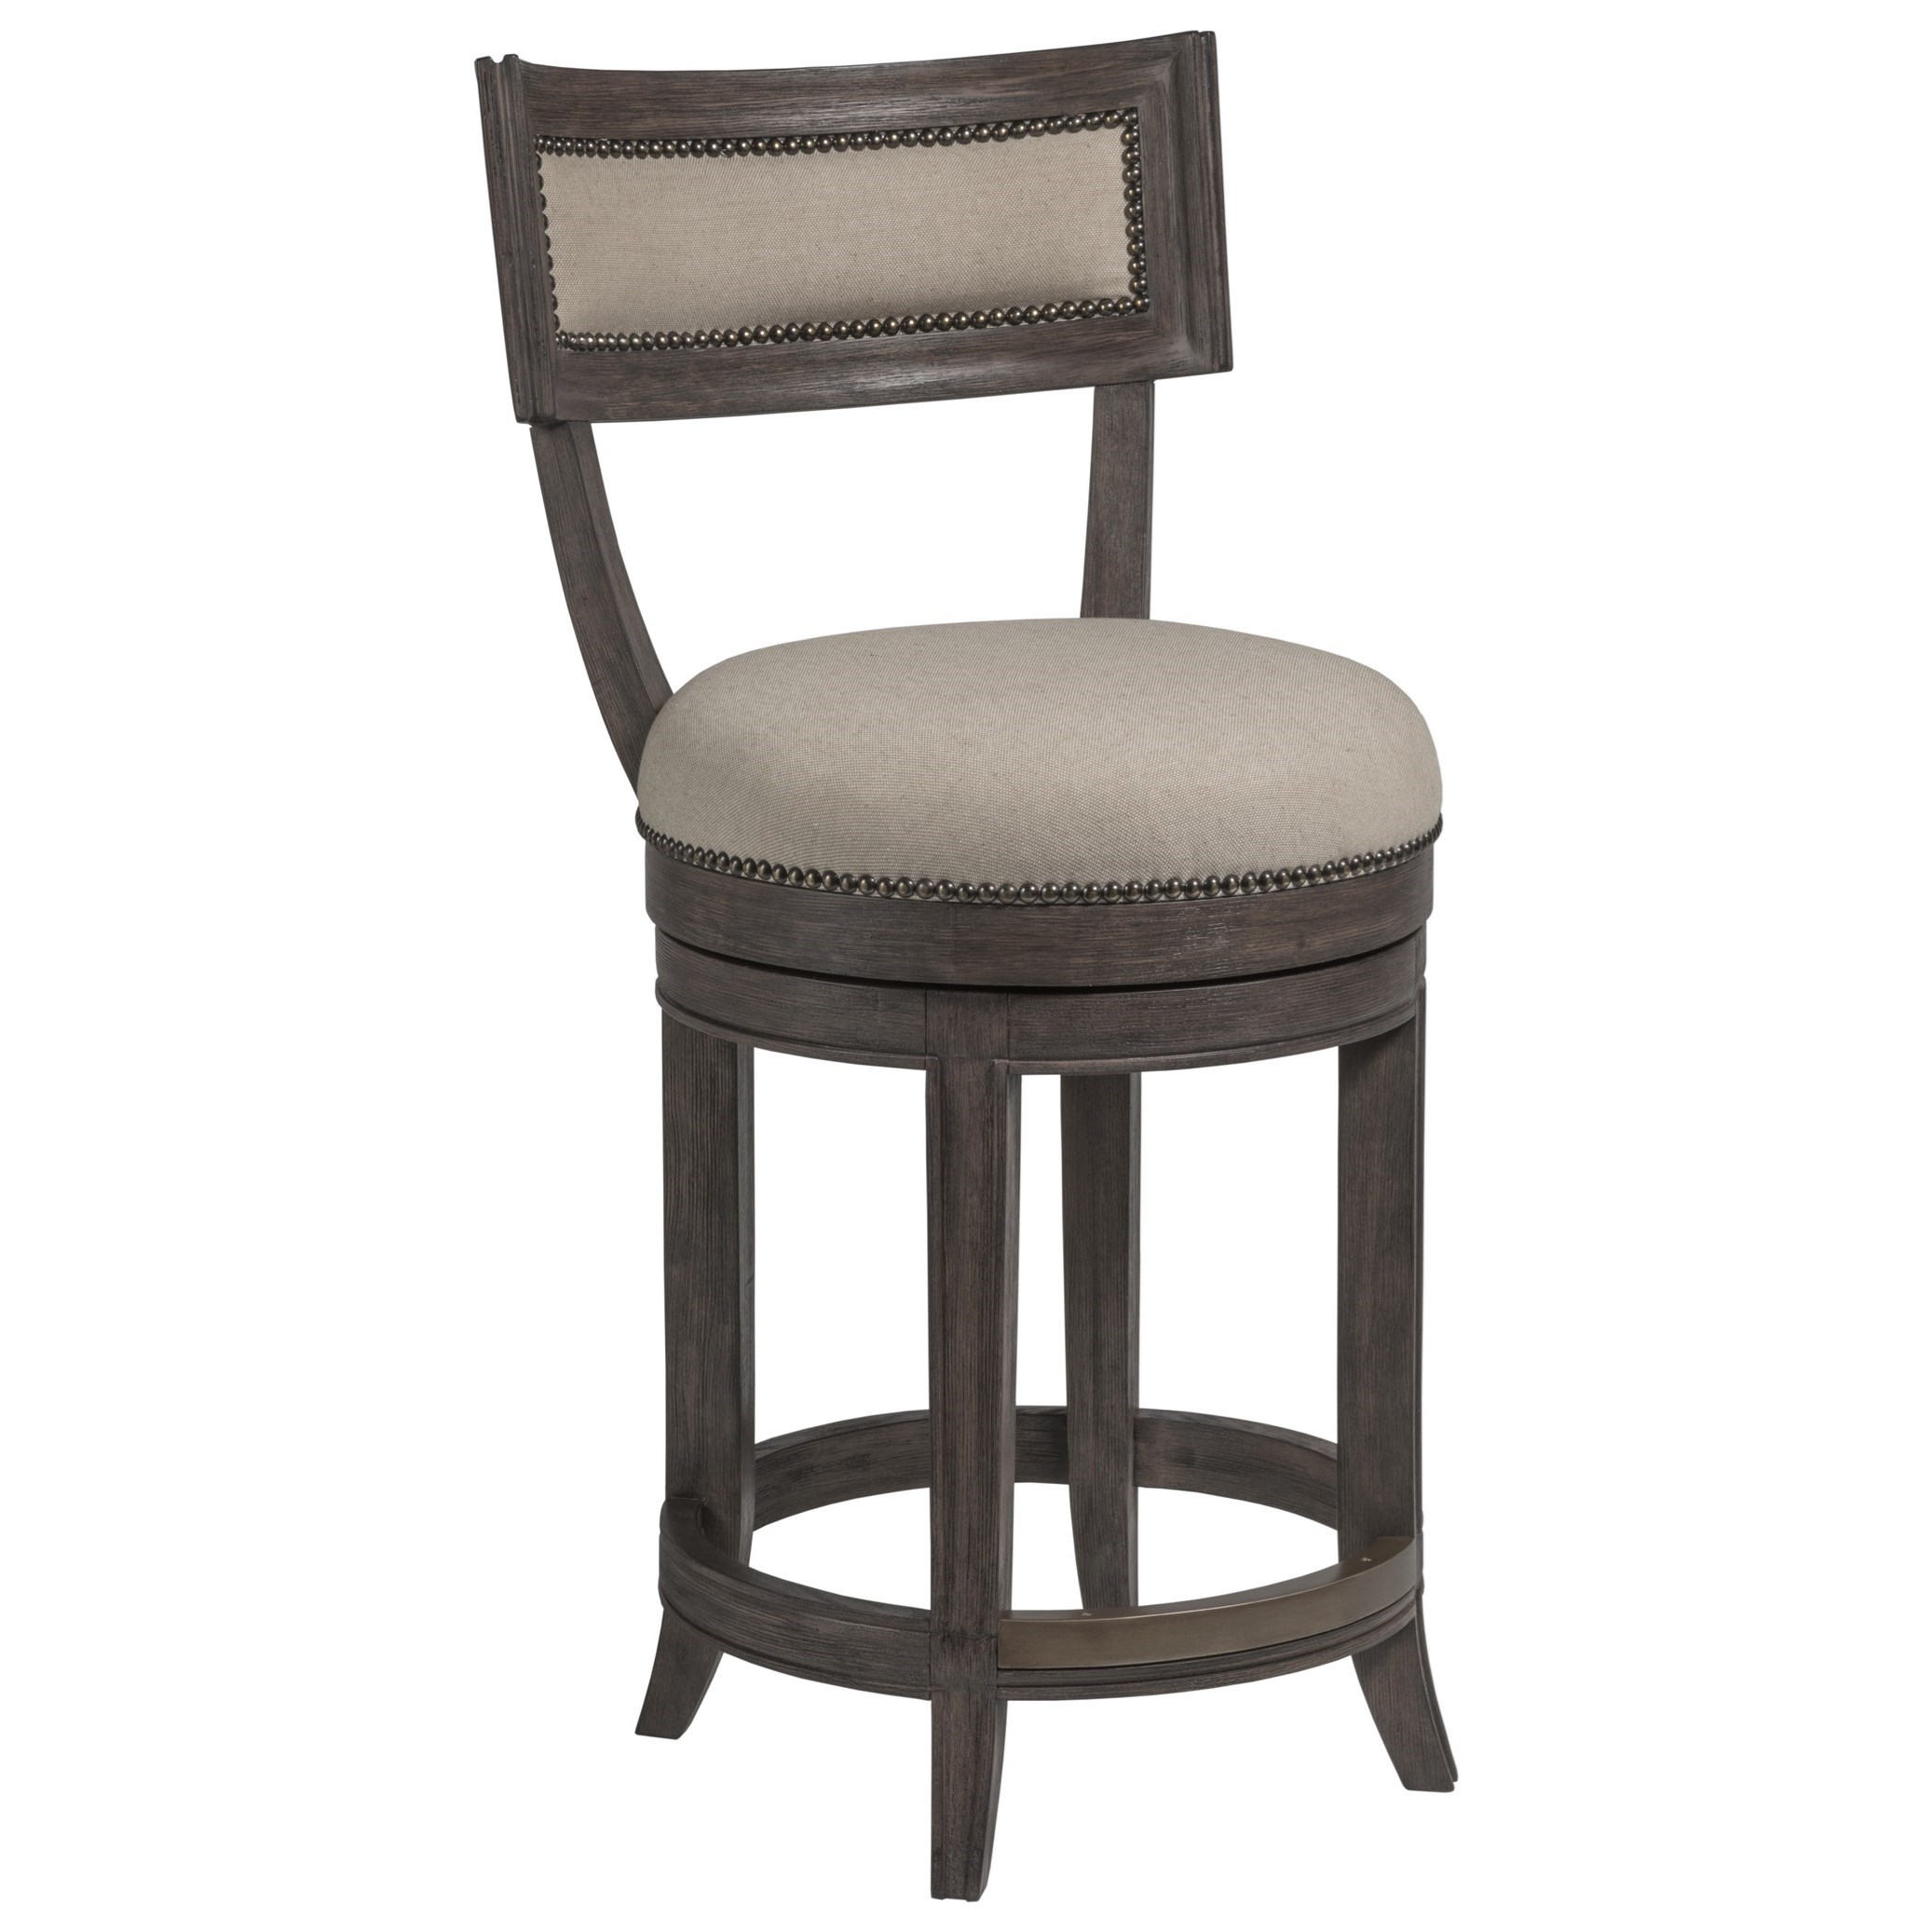 Cohesion Apertif Swivel Counter Stool by Artistica at C. S. Wo & Sons Hawaii